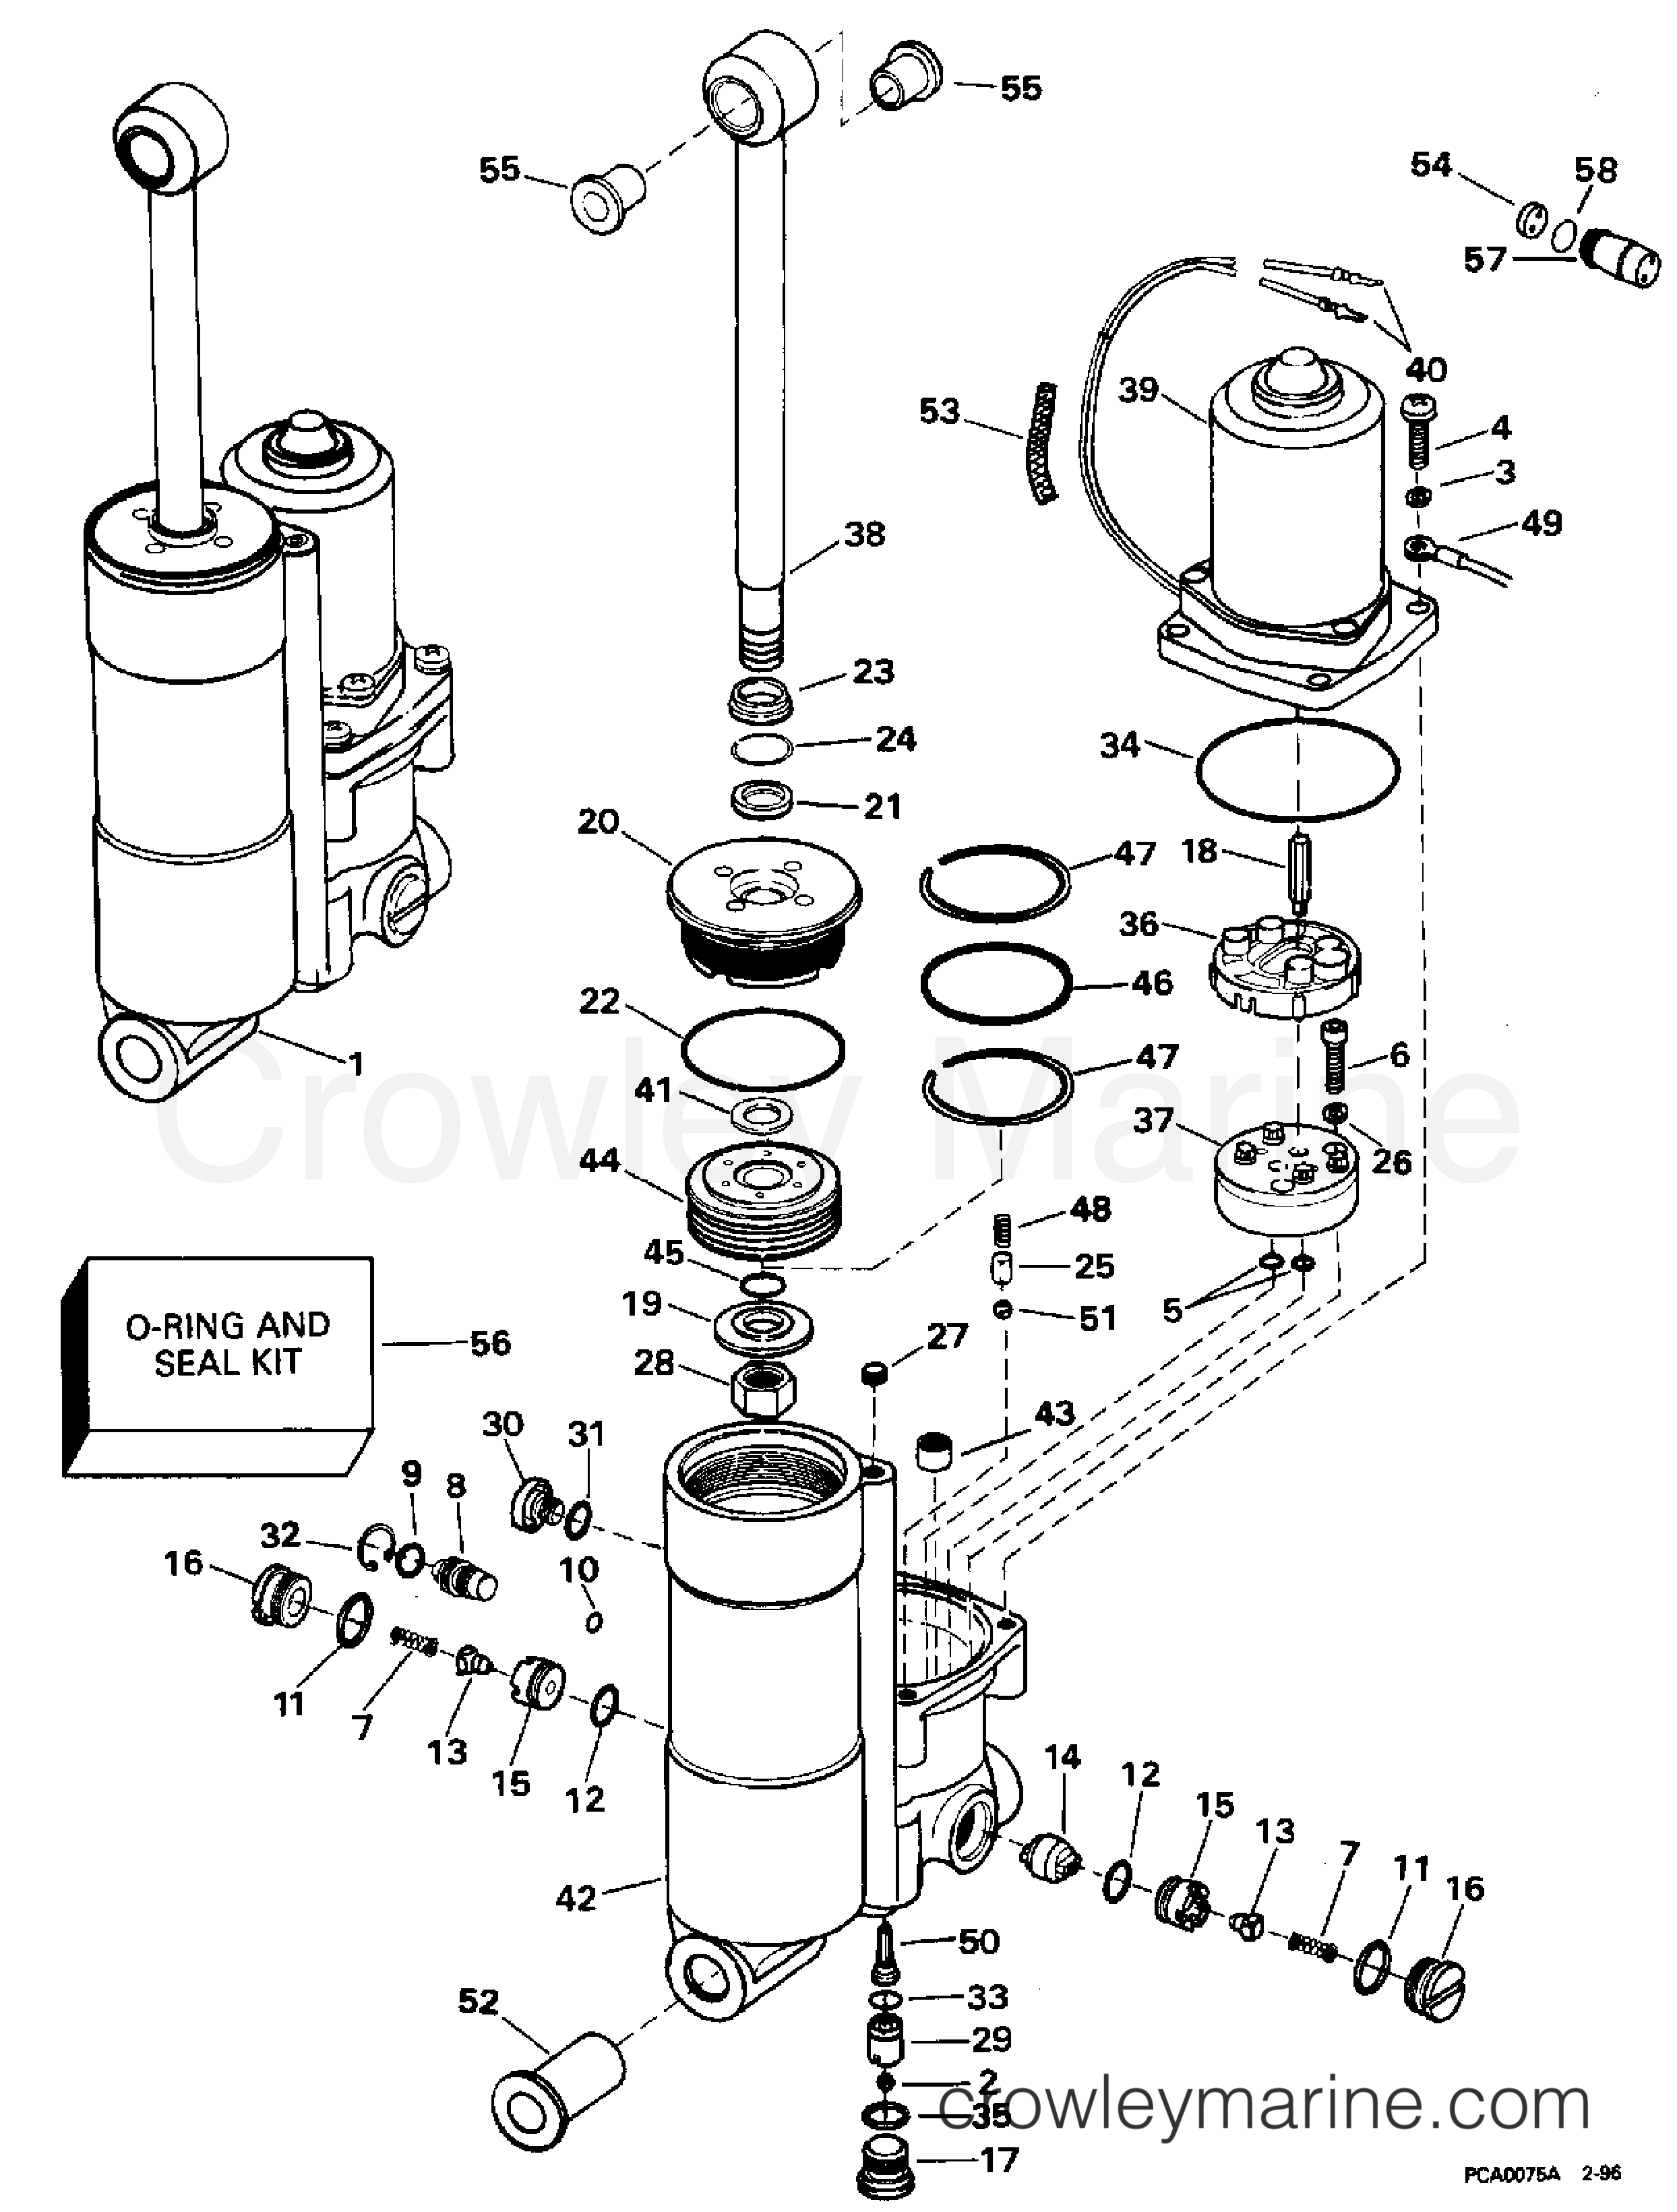 Johnson 9 Wiring Diagram And Schematics Ignition 1996 Evinrude Images Gallery